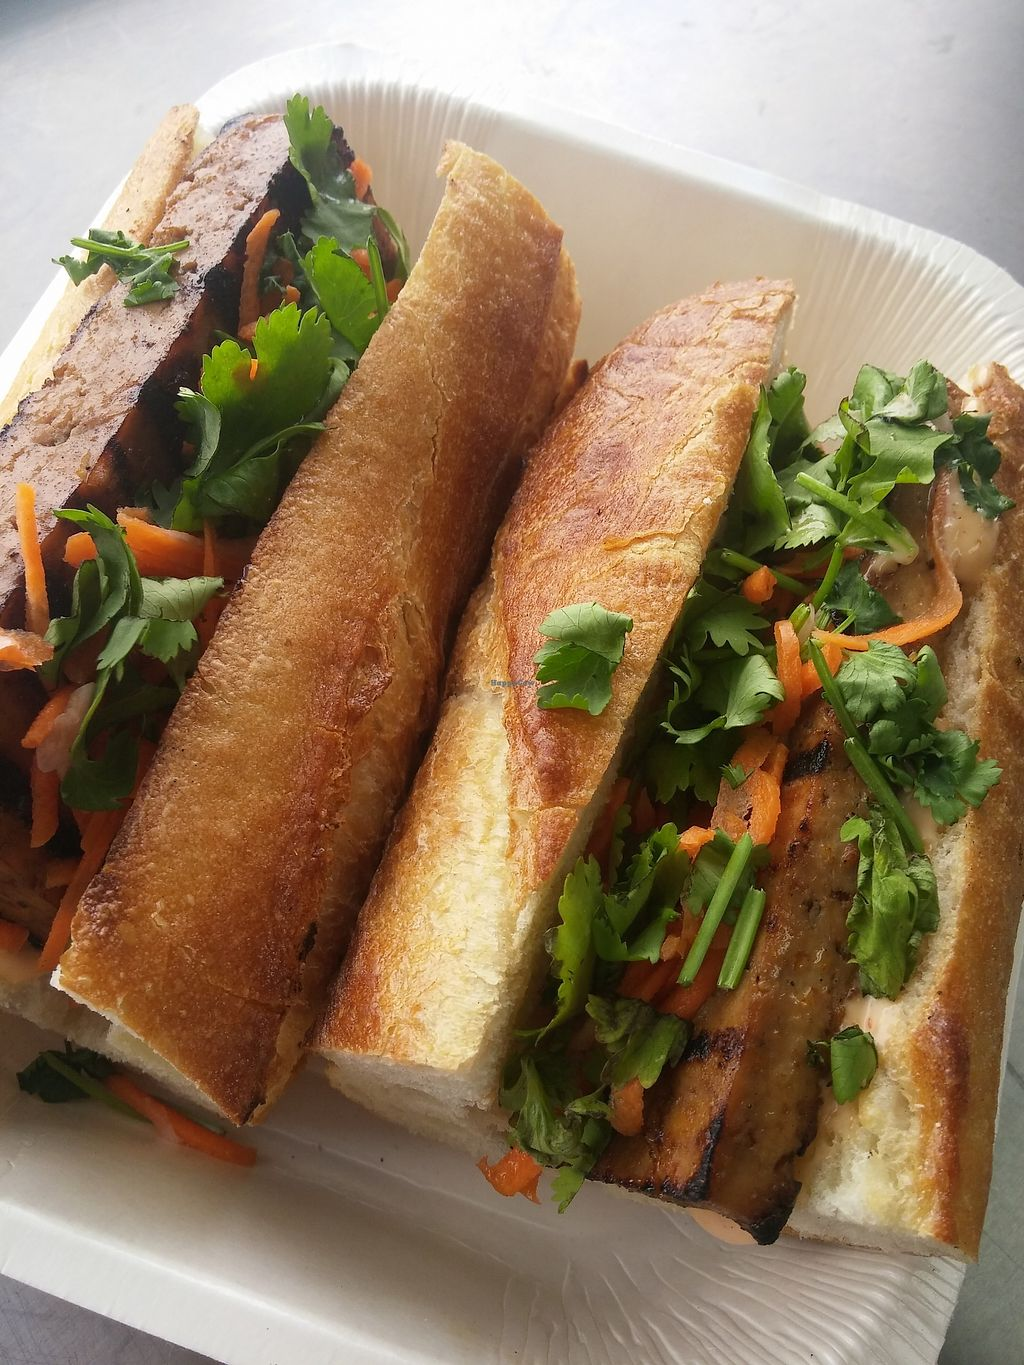 "Photo of L'Assiette Verte - Food Truck  by <a href=""/members/profile/Mary8"">Mary8</a> <br/>Le Bahn Mi.   Sous-marin vietnamien au tofu, legumes et avec mayo epicee.   <br/> September 18, 2017  - <a href='/contact/abuse/image/100763/305756'>Report</a>"